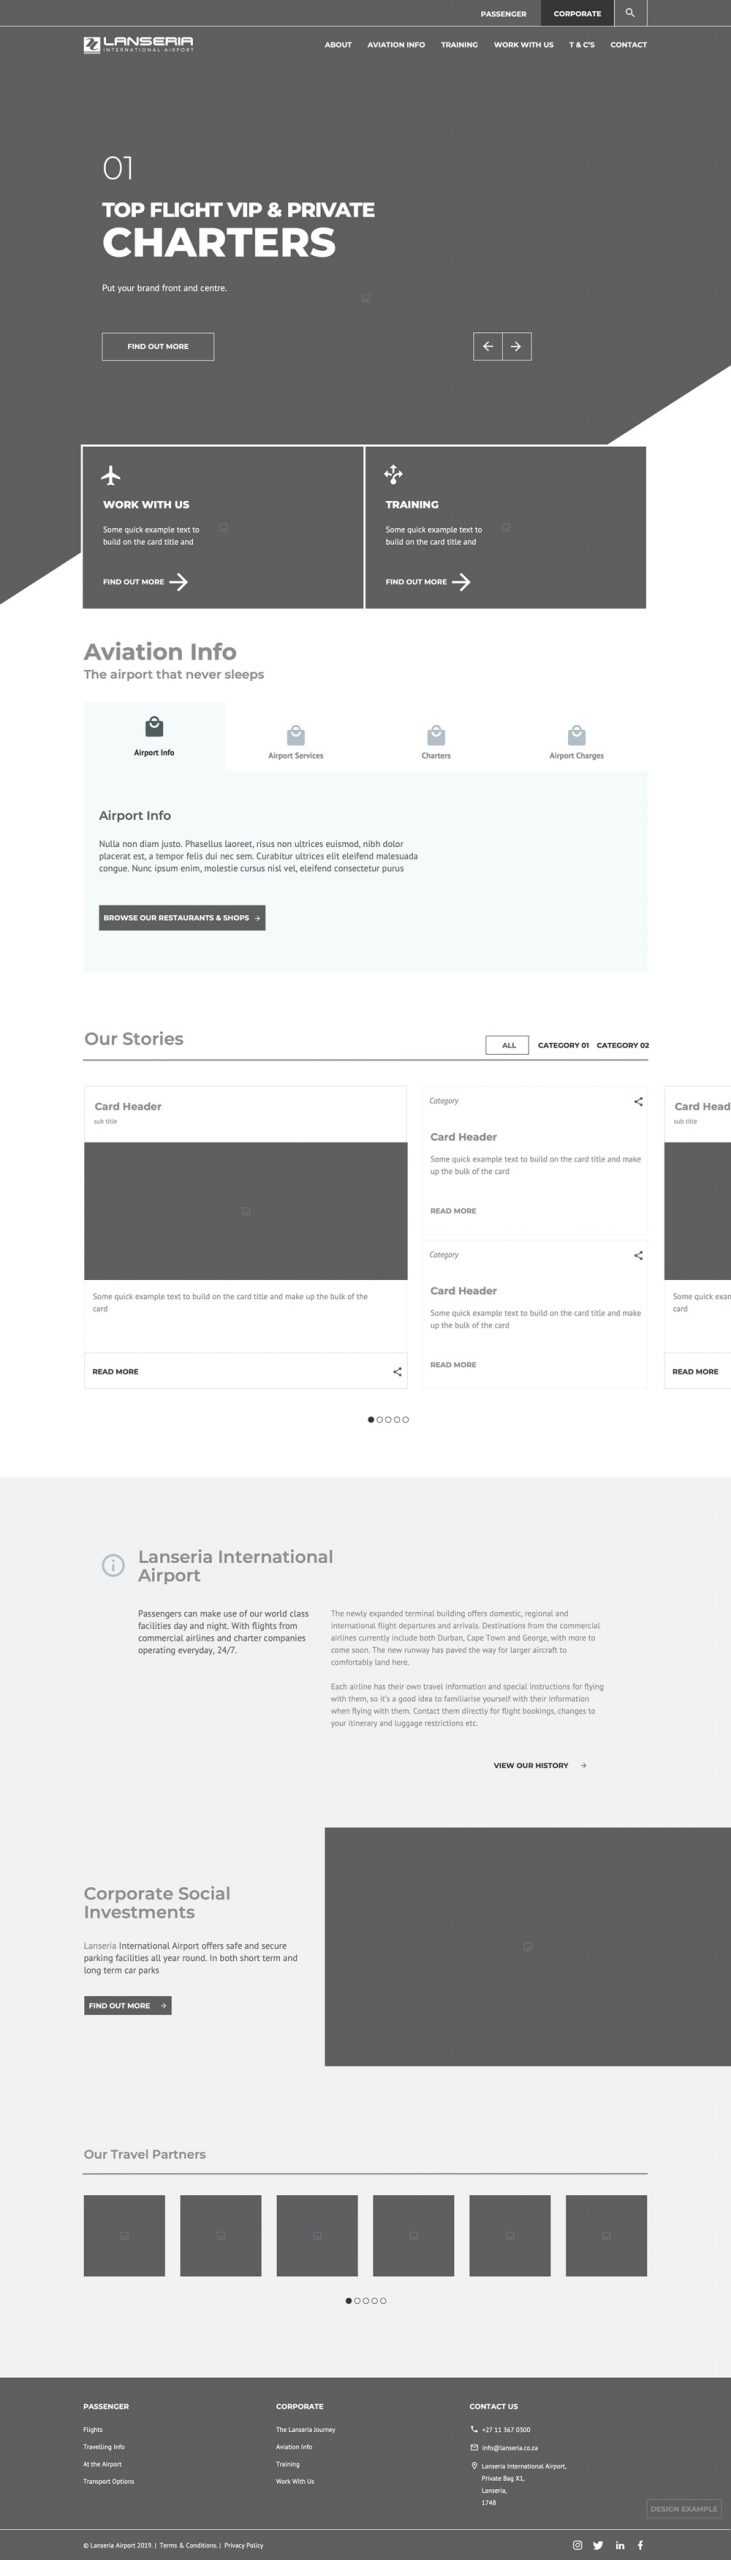 Lanseria_Website_Wireframes_Corporate